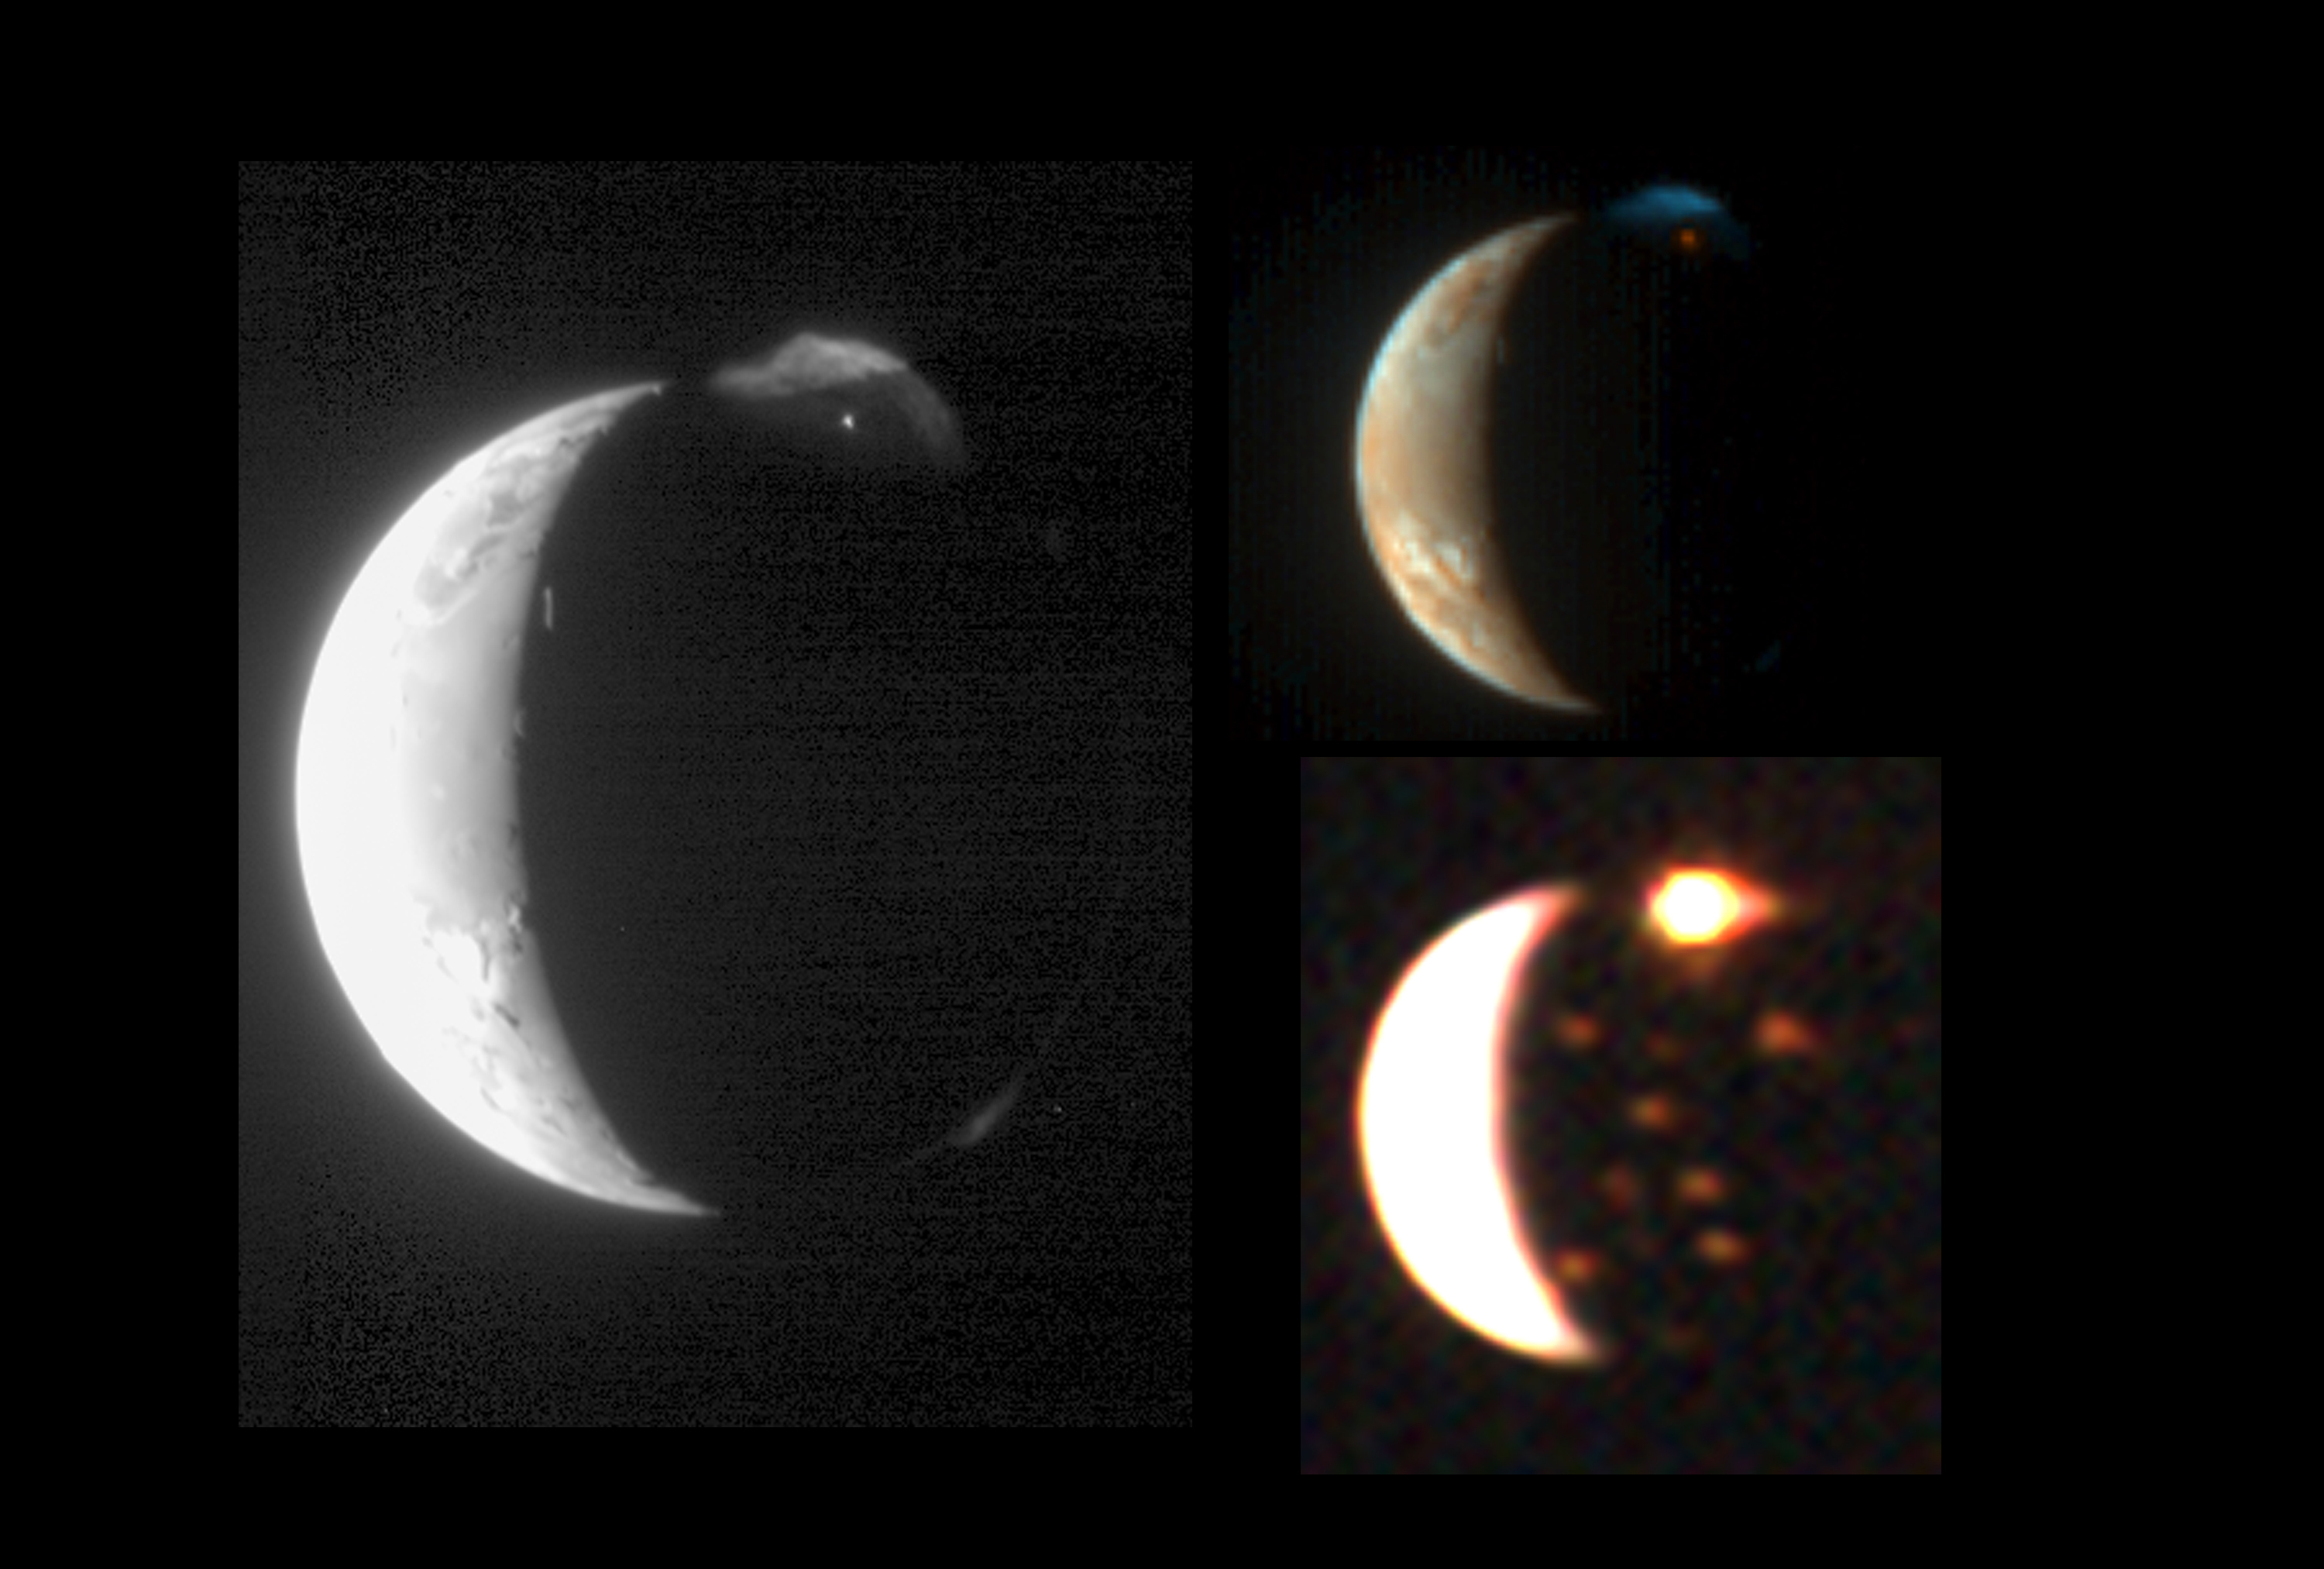 Io Through Different 'Eyes'